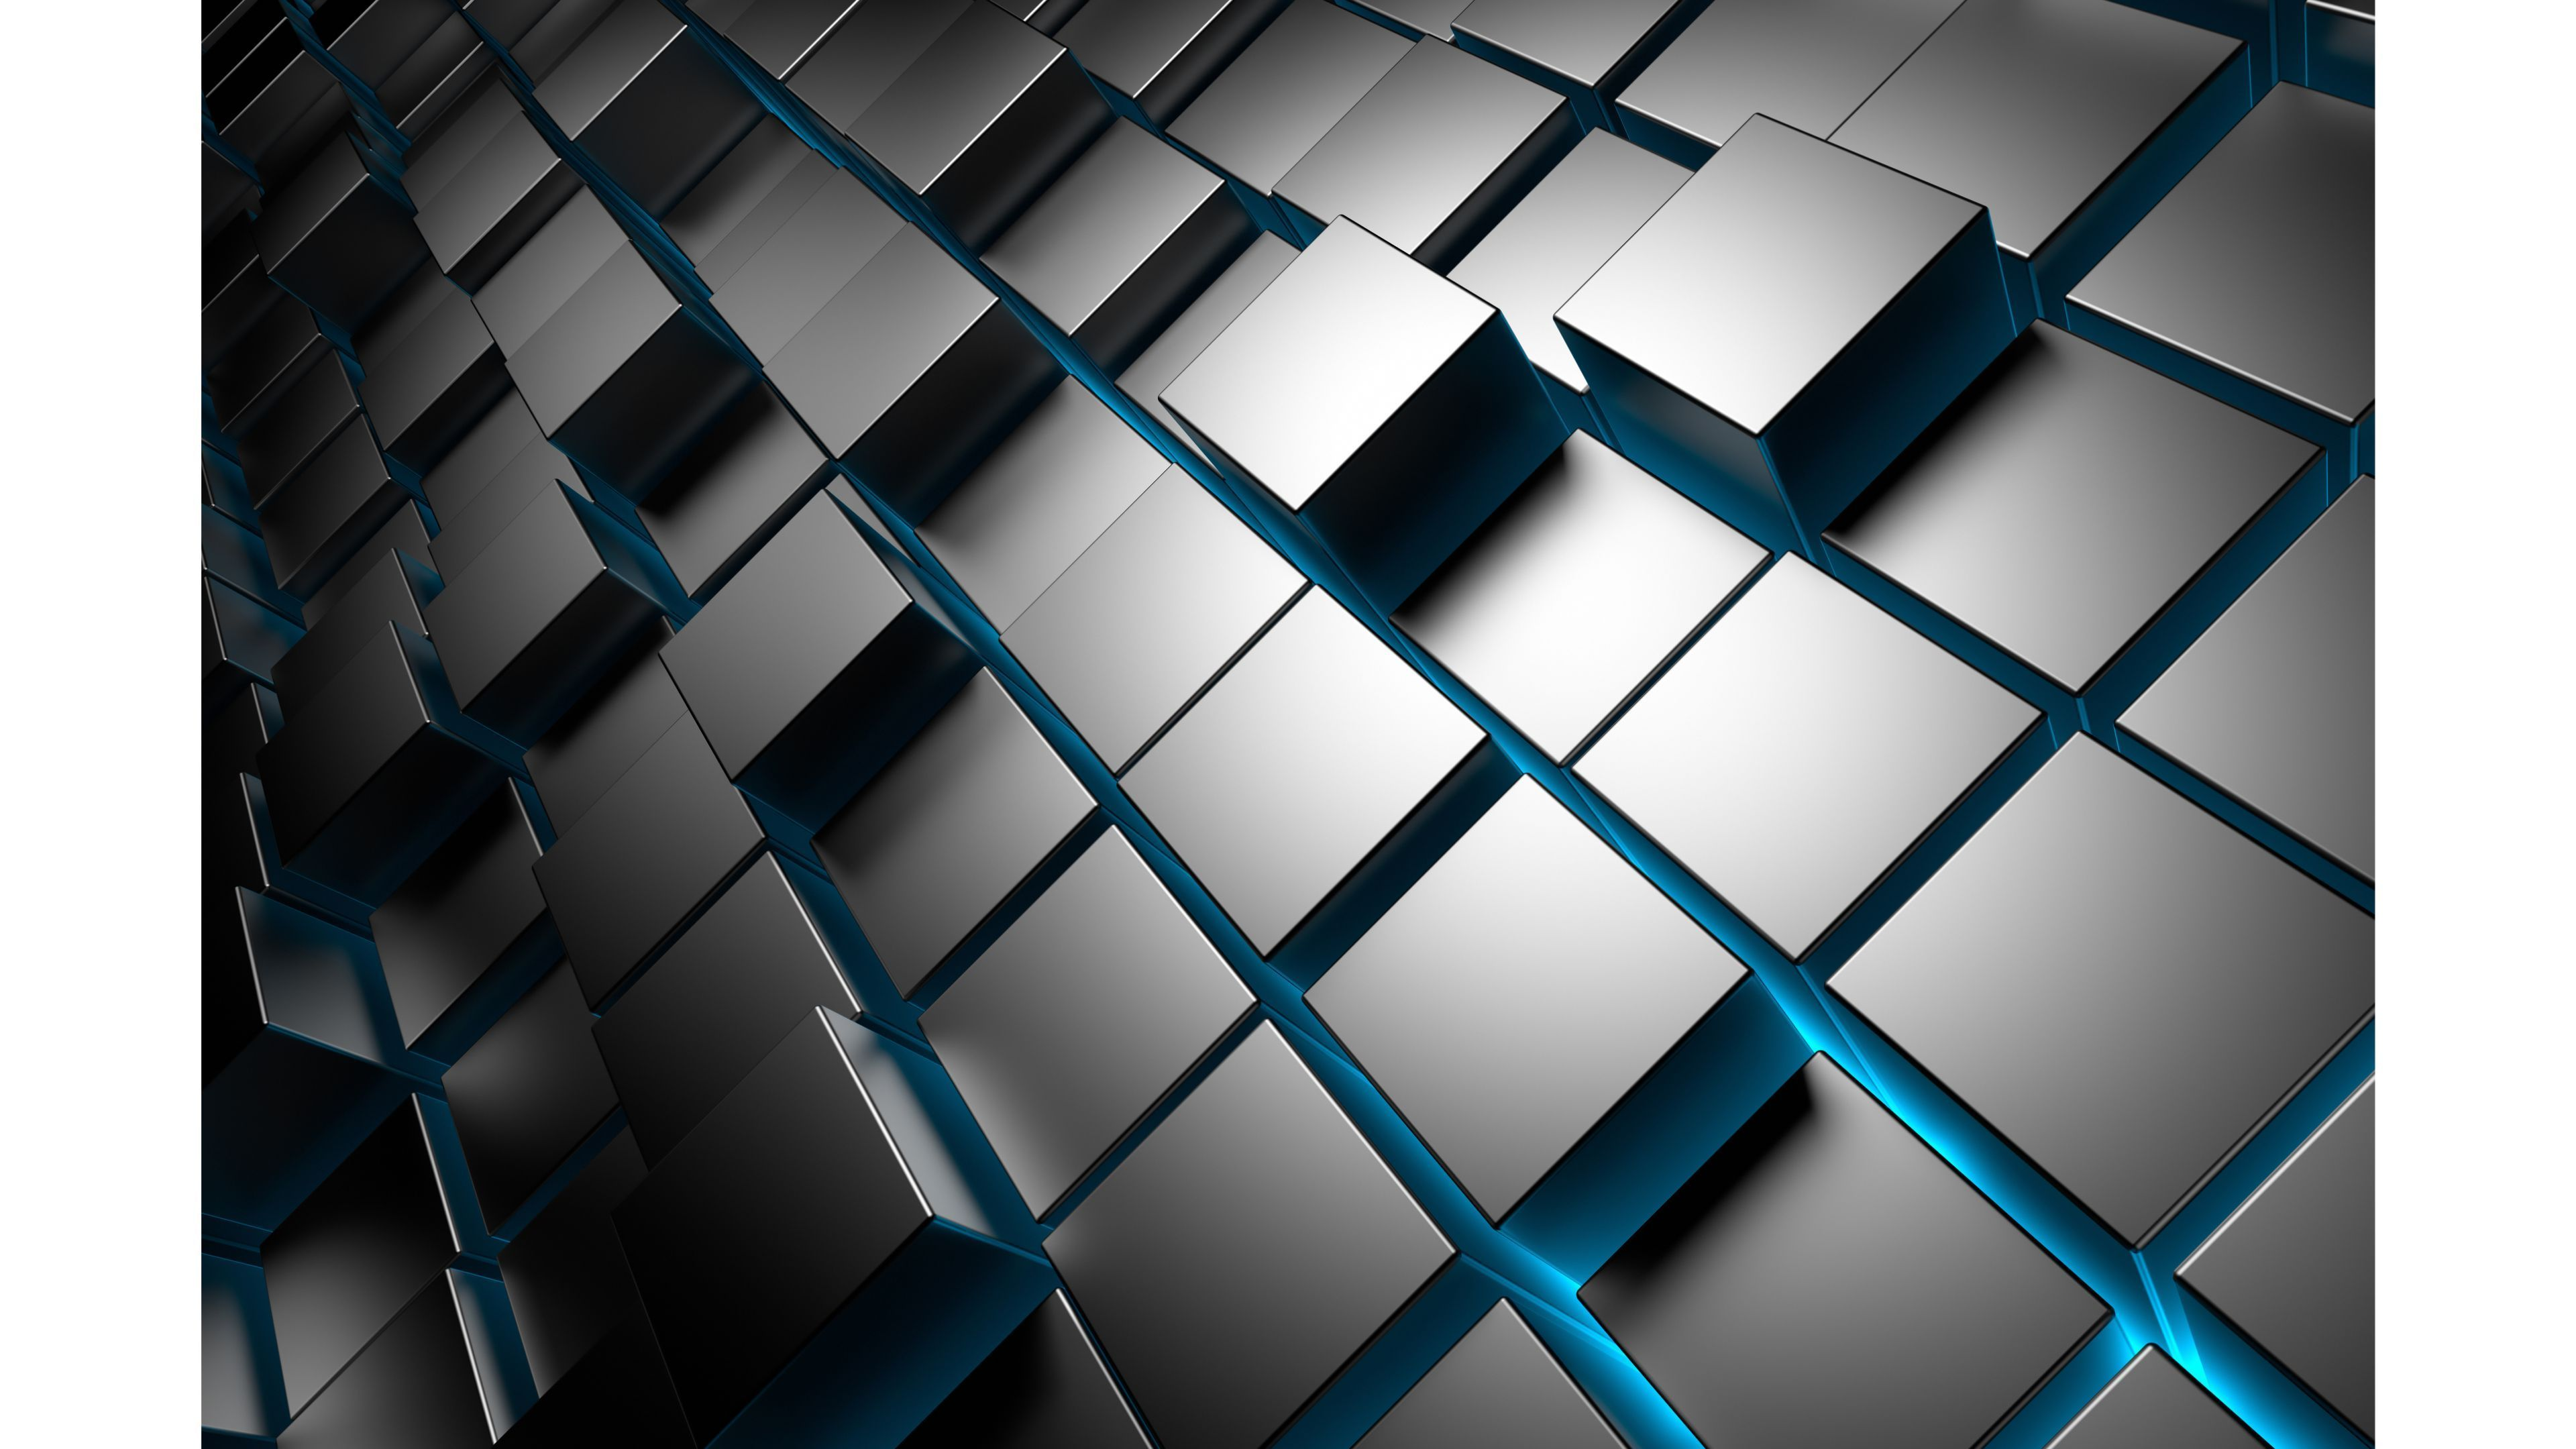 4k 3d Abstract Wallpapers Top Free 4k 3d Abstract Backgrounds Wallpaperaccess Cool Desktop Backgrounds 3d Cube Wallpaper Cool Backgrounds Wallpapers